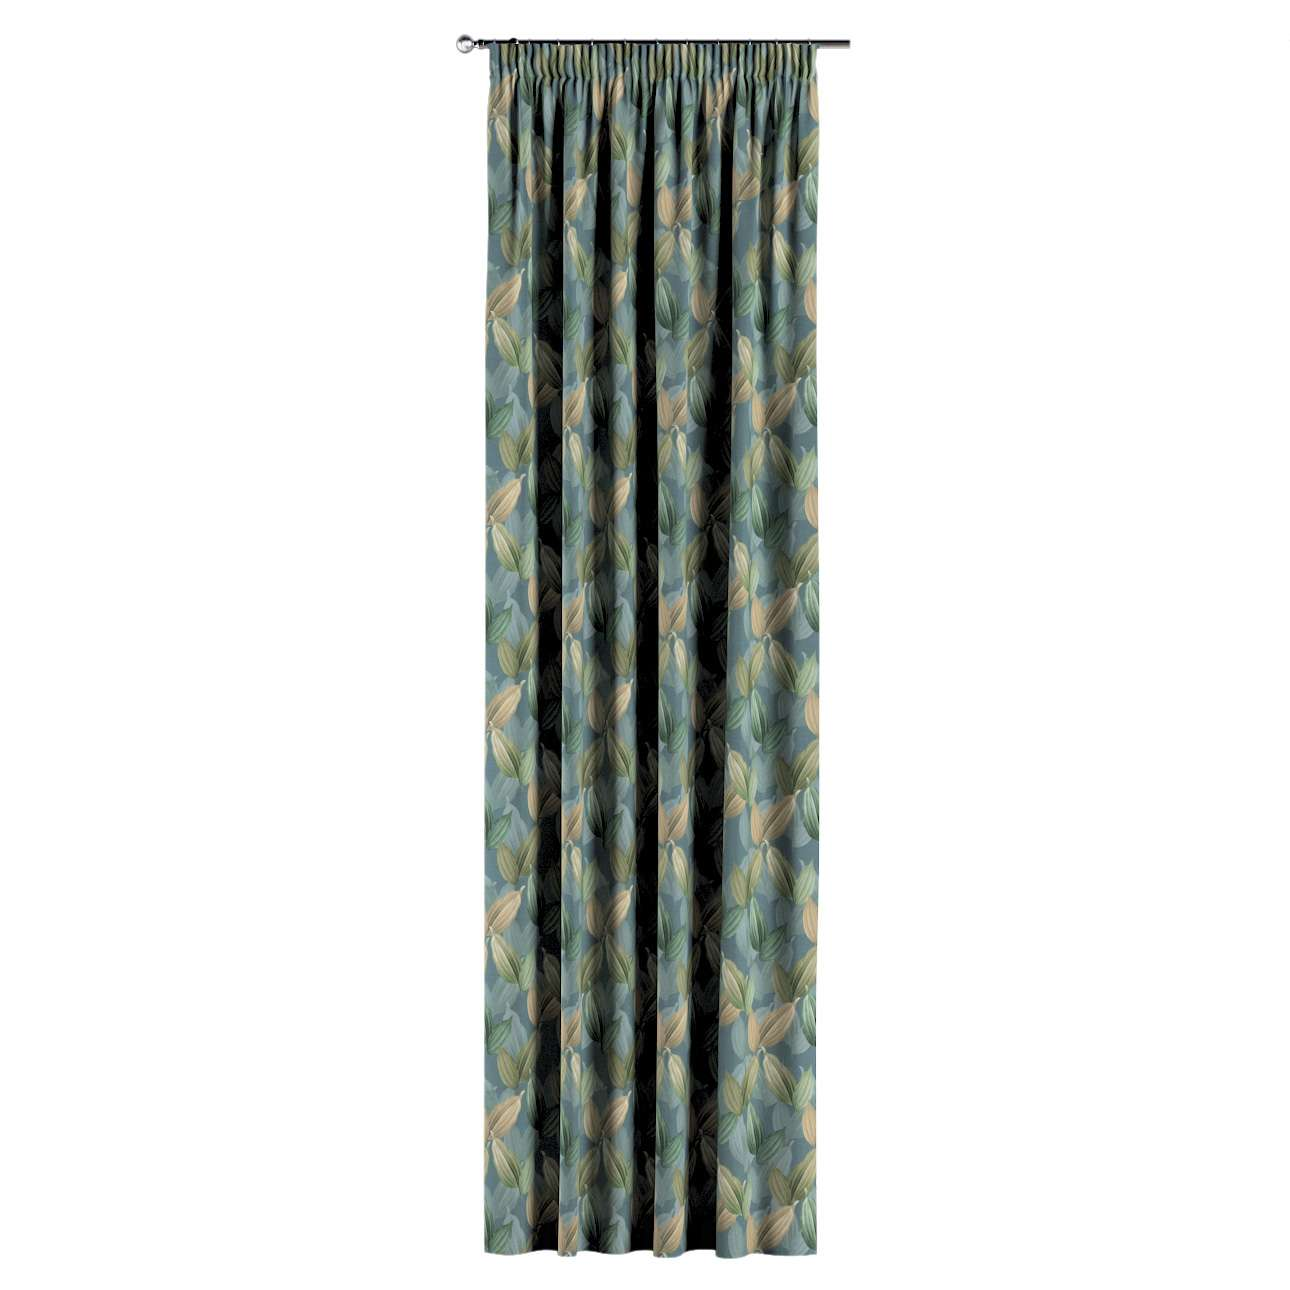 Pencil pleat curtains in collection Abigail, fabric: 143-20